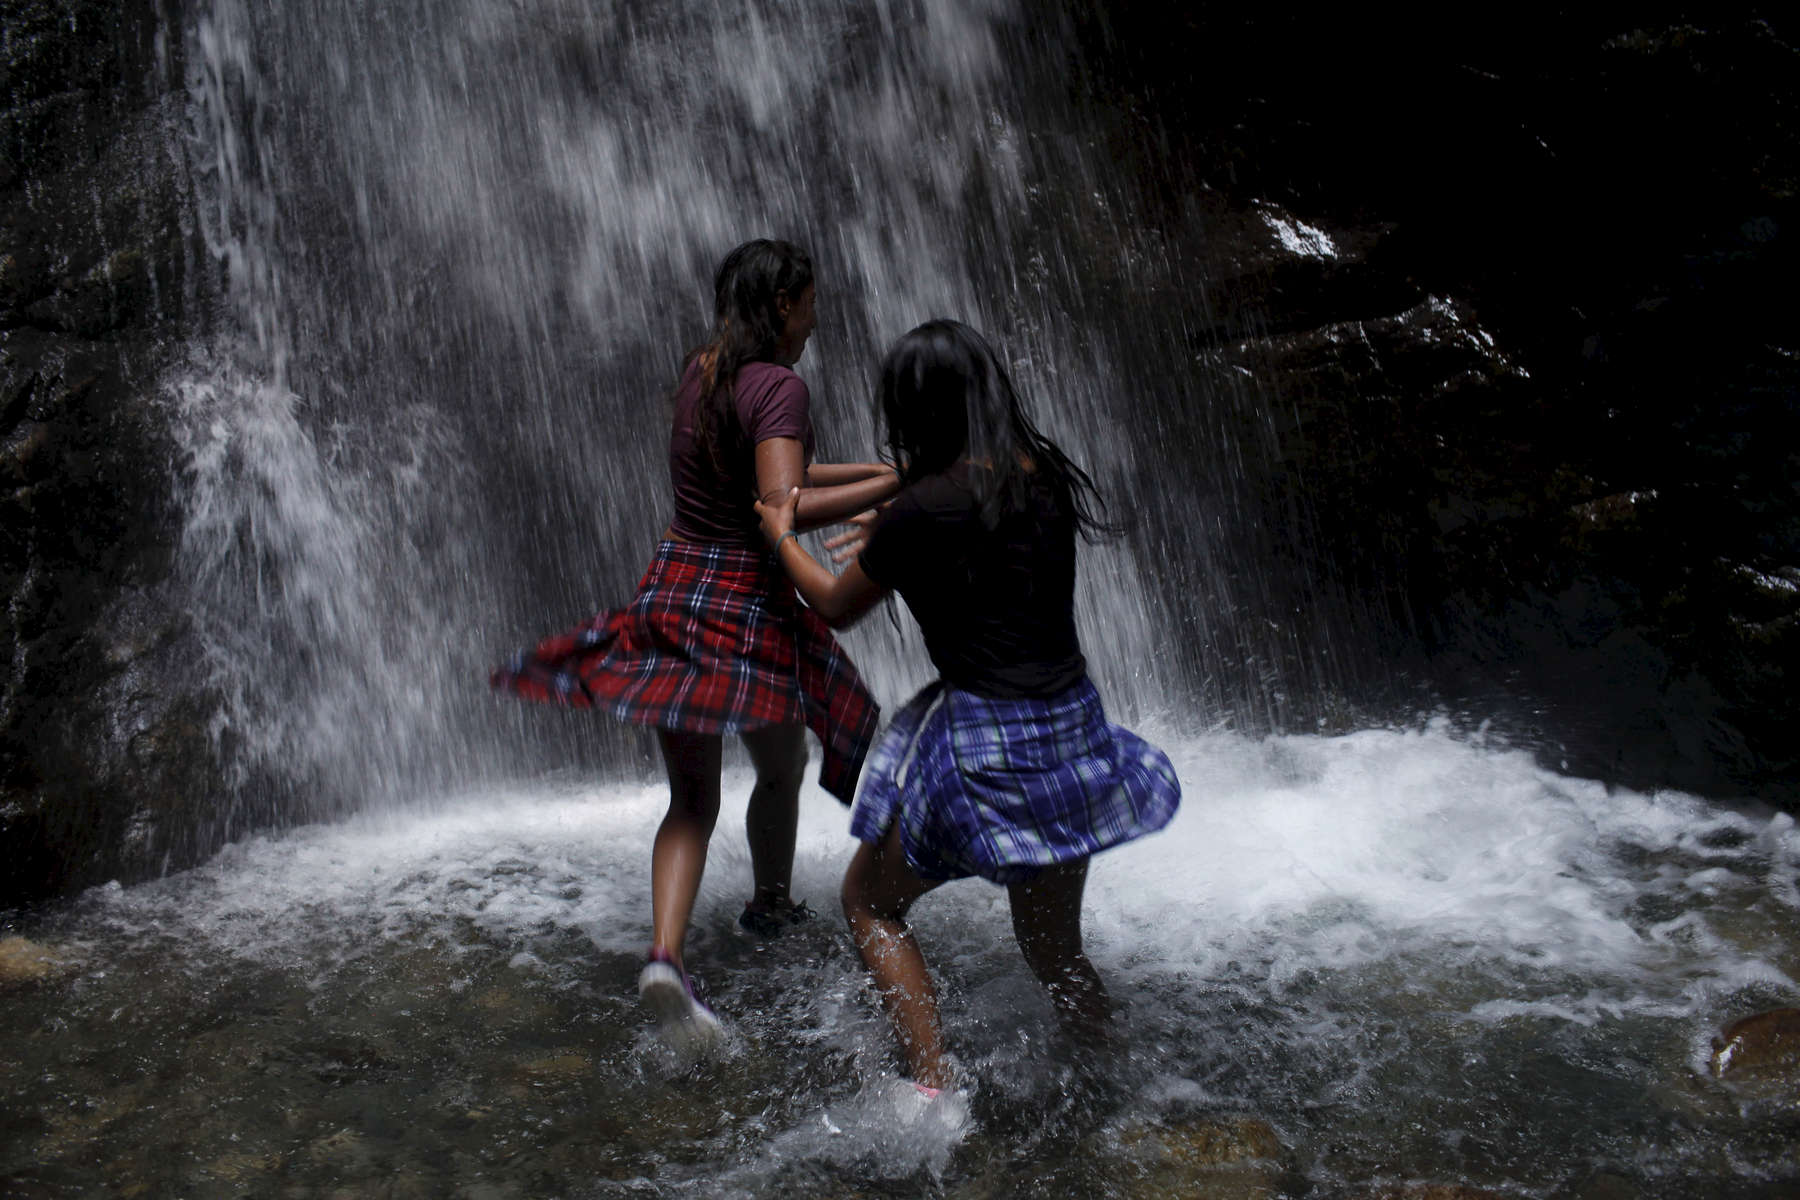 Sostika Chhetri, 14, left, and Dechen Drukpa, 14, run into the Zapata Falls on Sept. 3, 2017. The falls are not far from the Great Sand Dunes National Park and Preserve, where the girls spent much of the day.